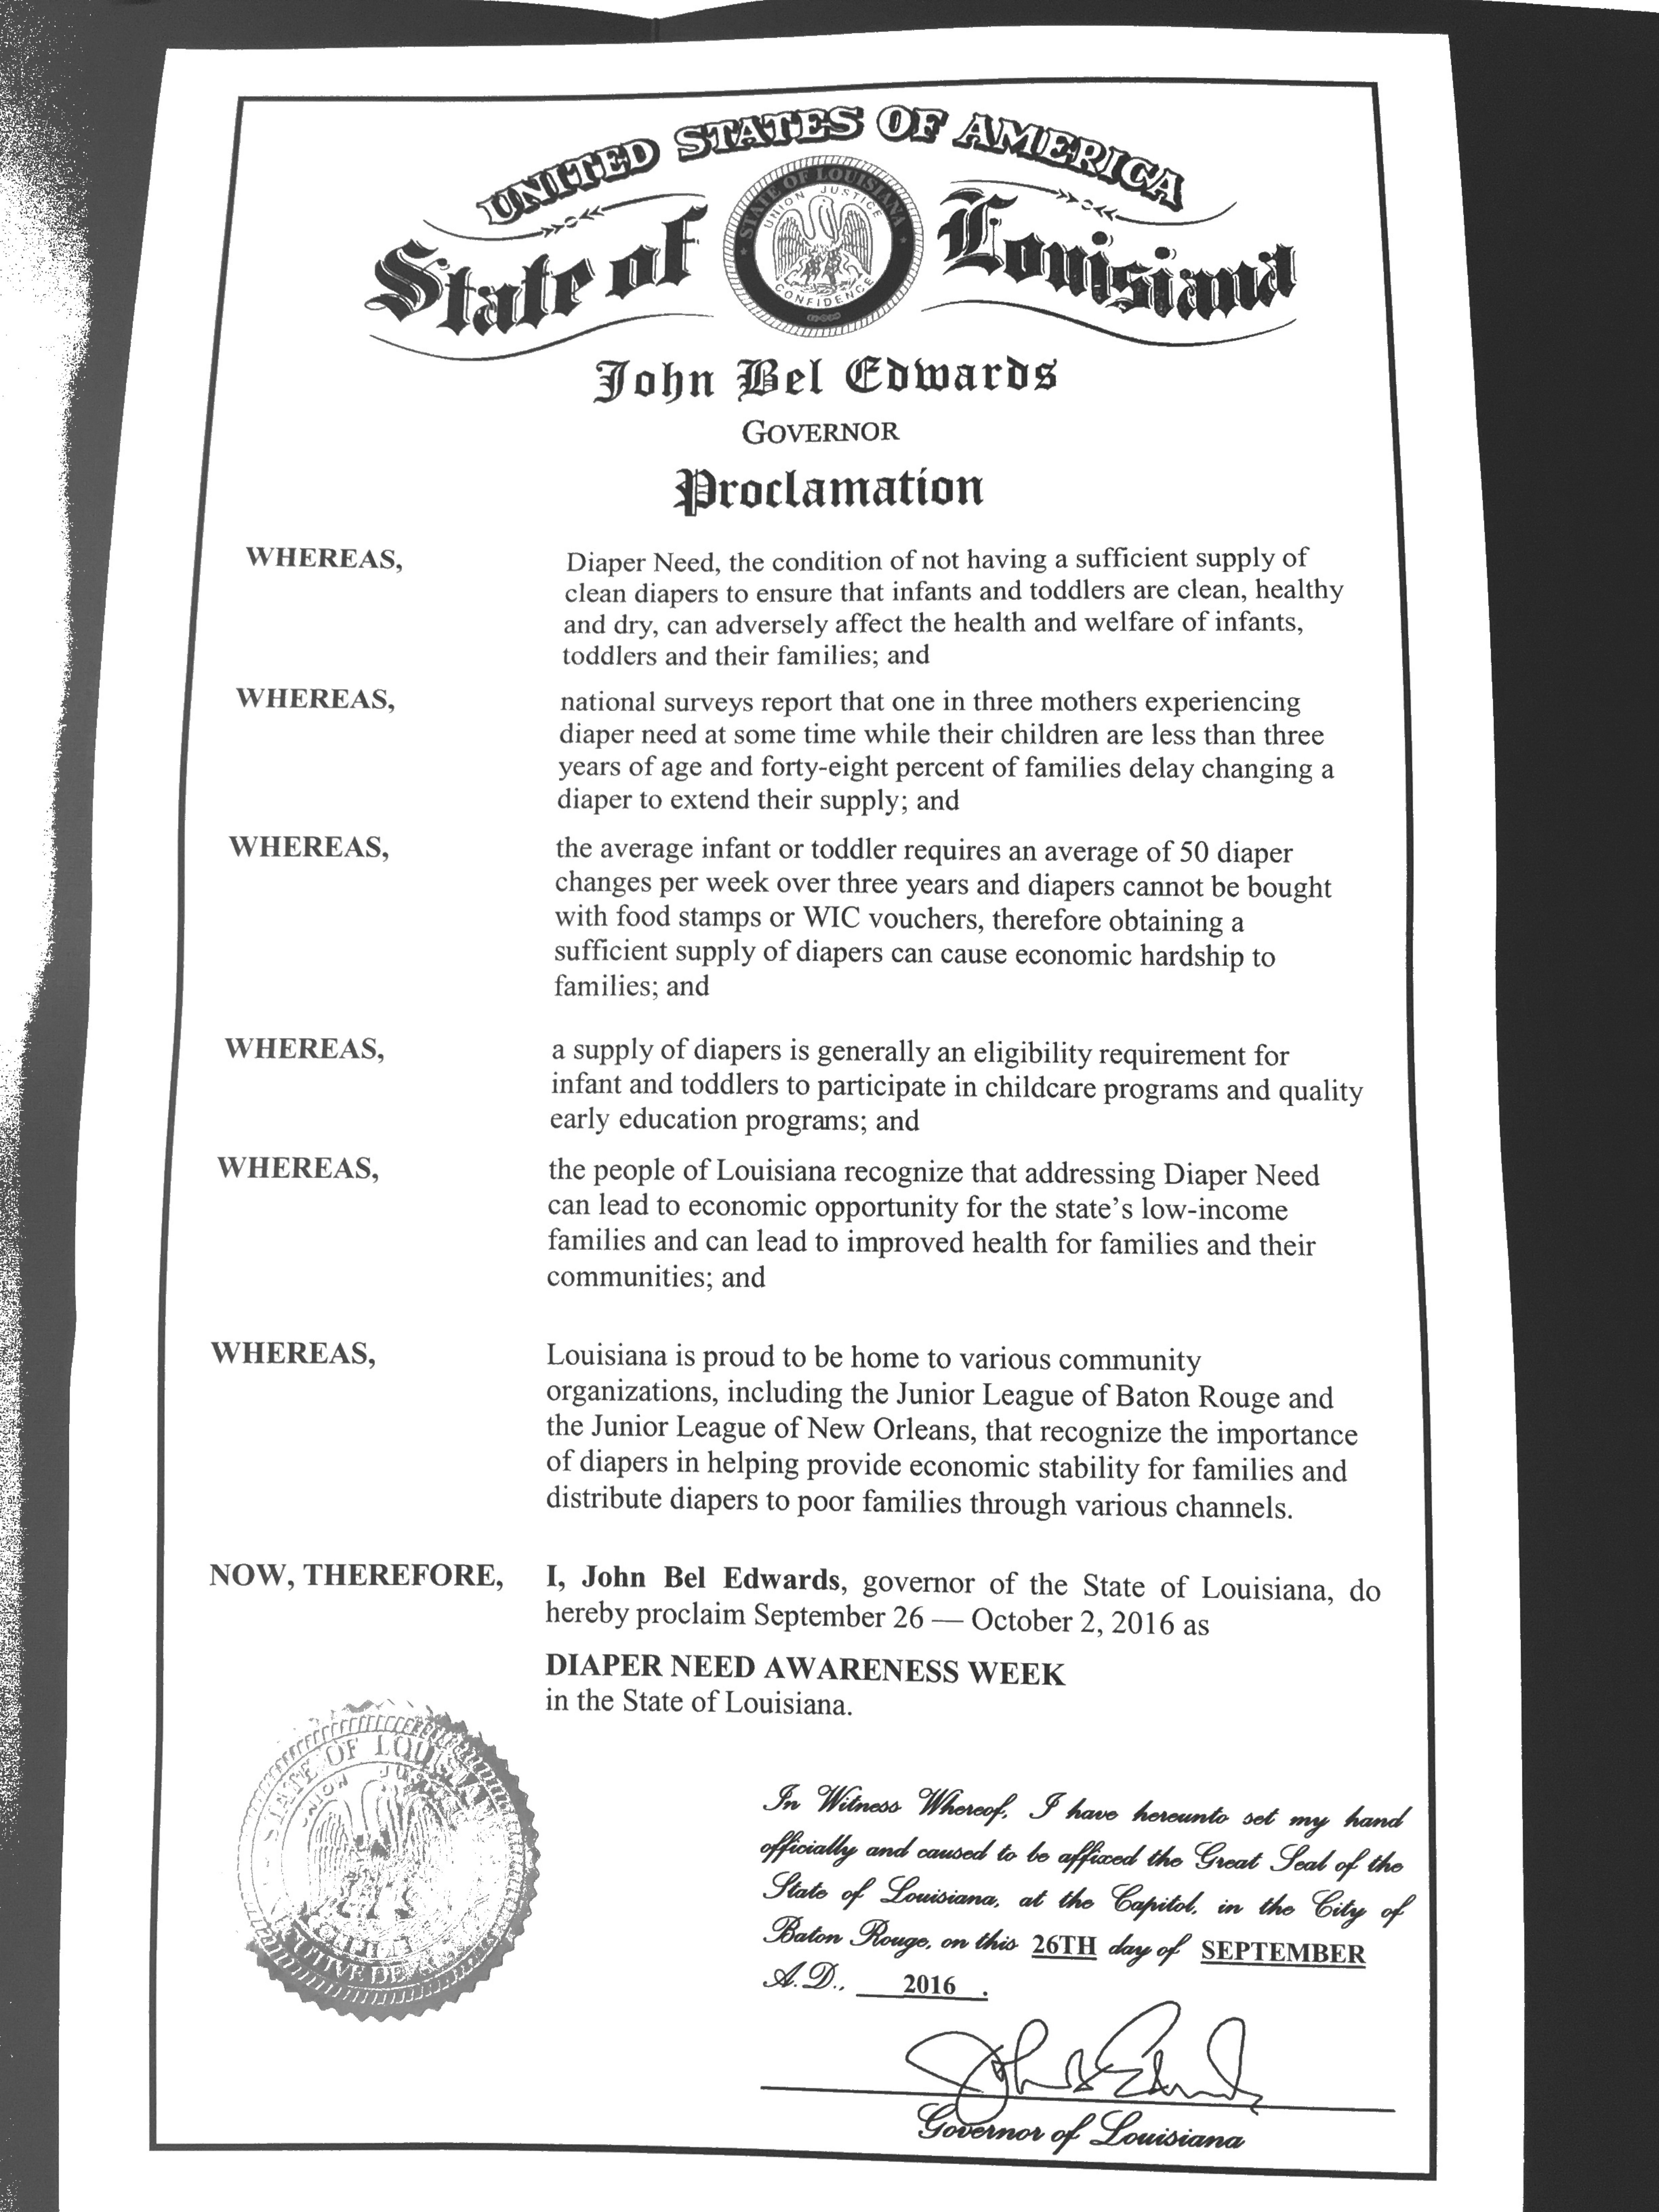 LOUISIANA - Governor John Bel Edwards' proclamation recognizing Diaper Need Awareness Week (Sep. 26 - Oct. 2, 2016) #diaperneed diaperneed.org